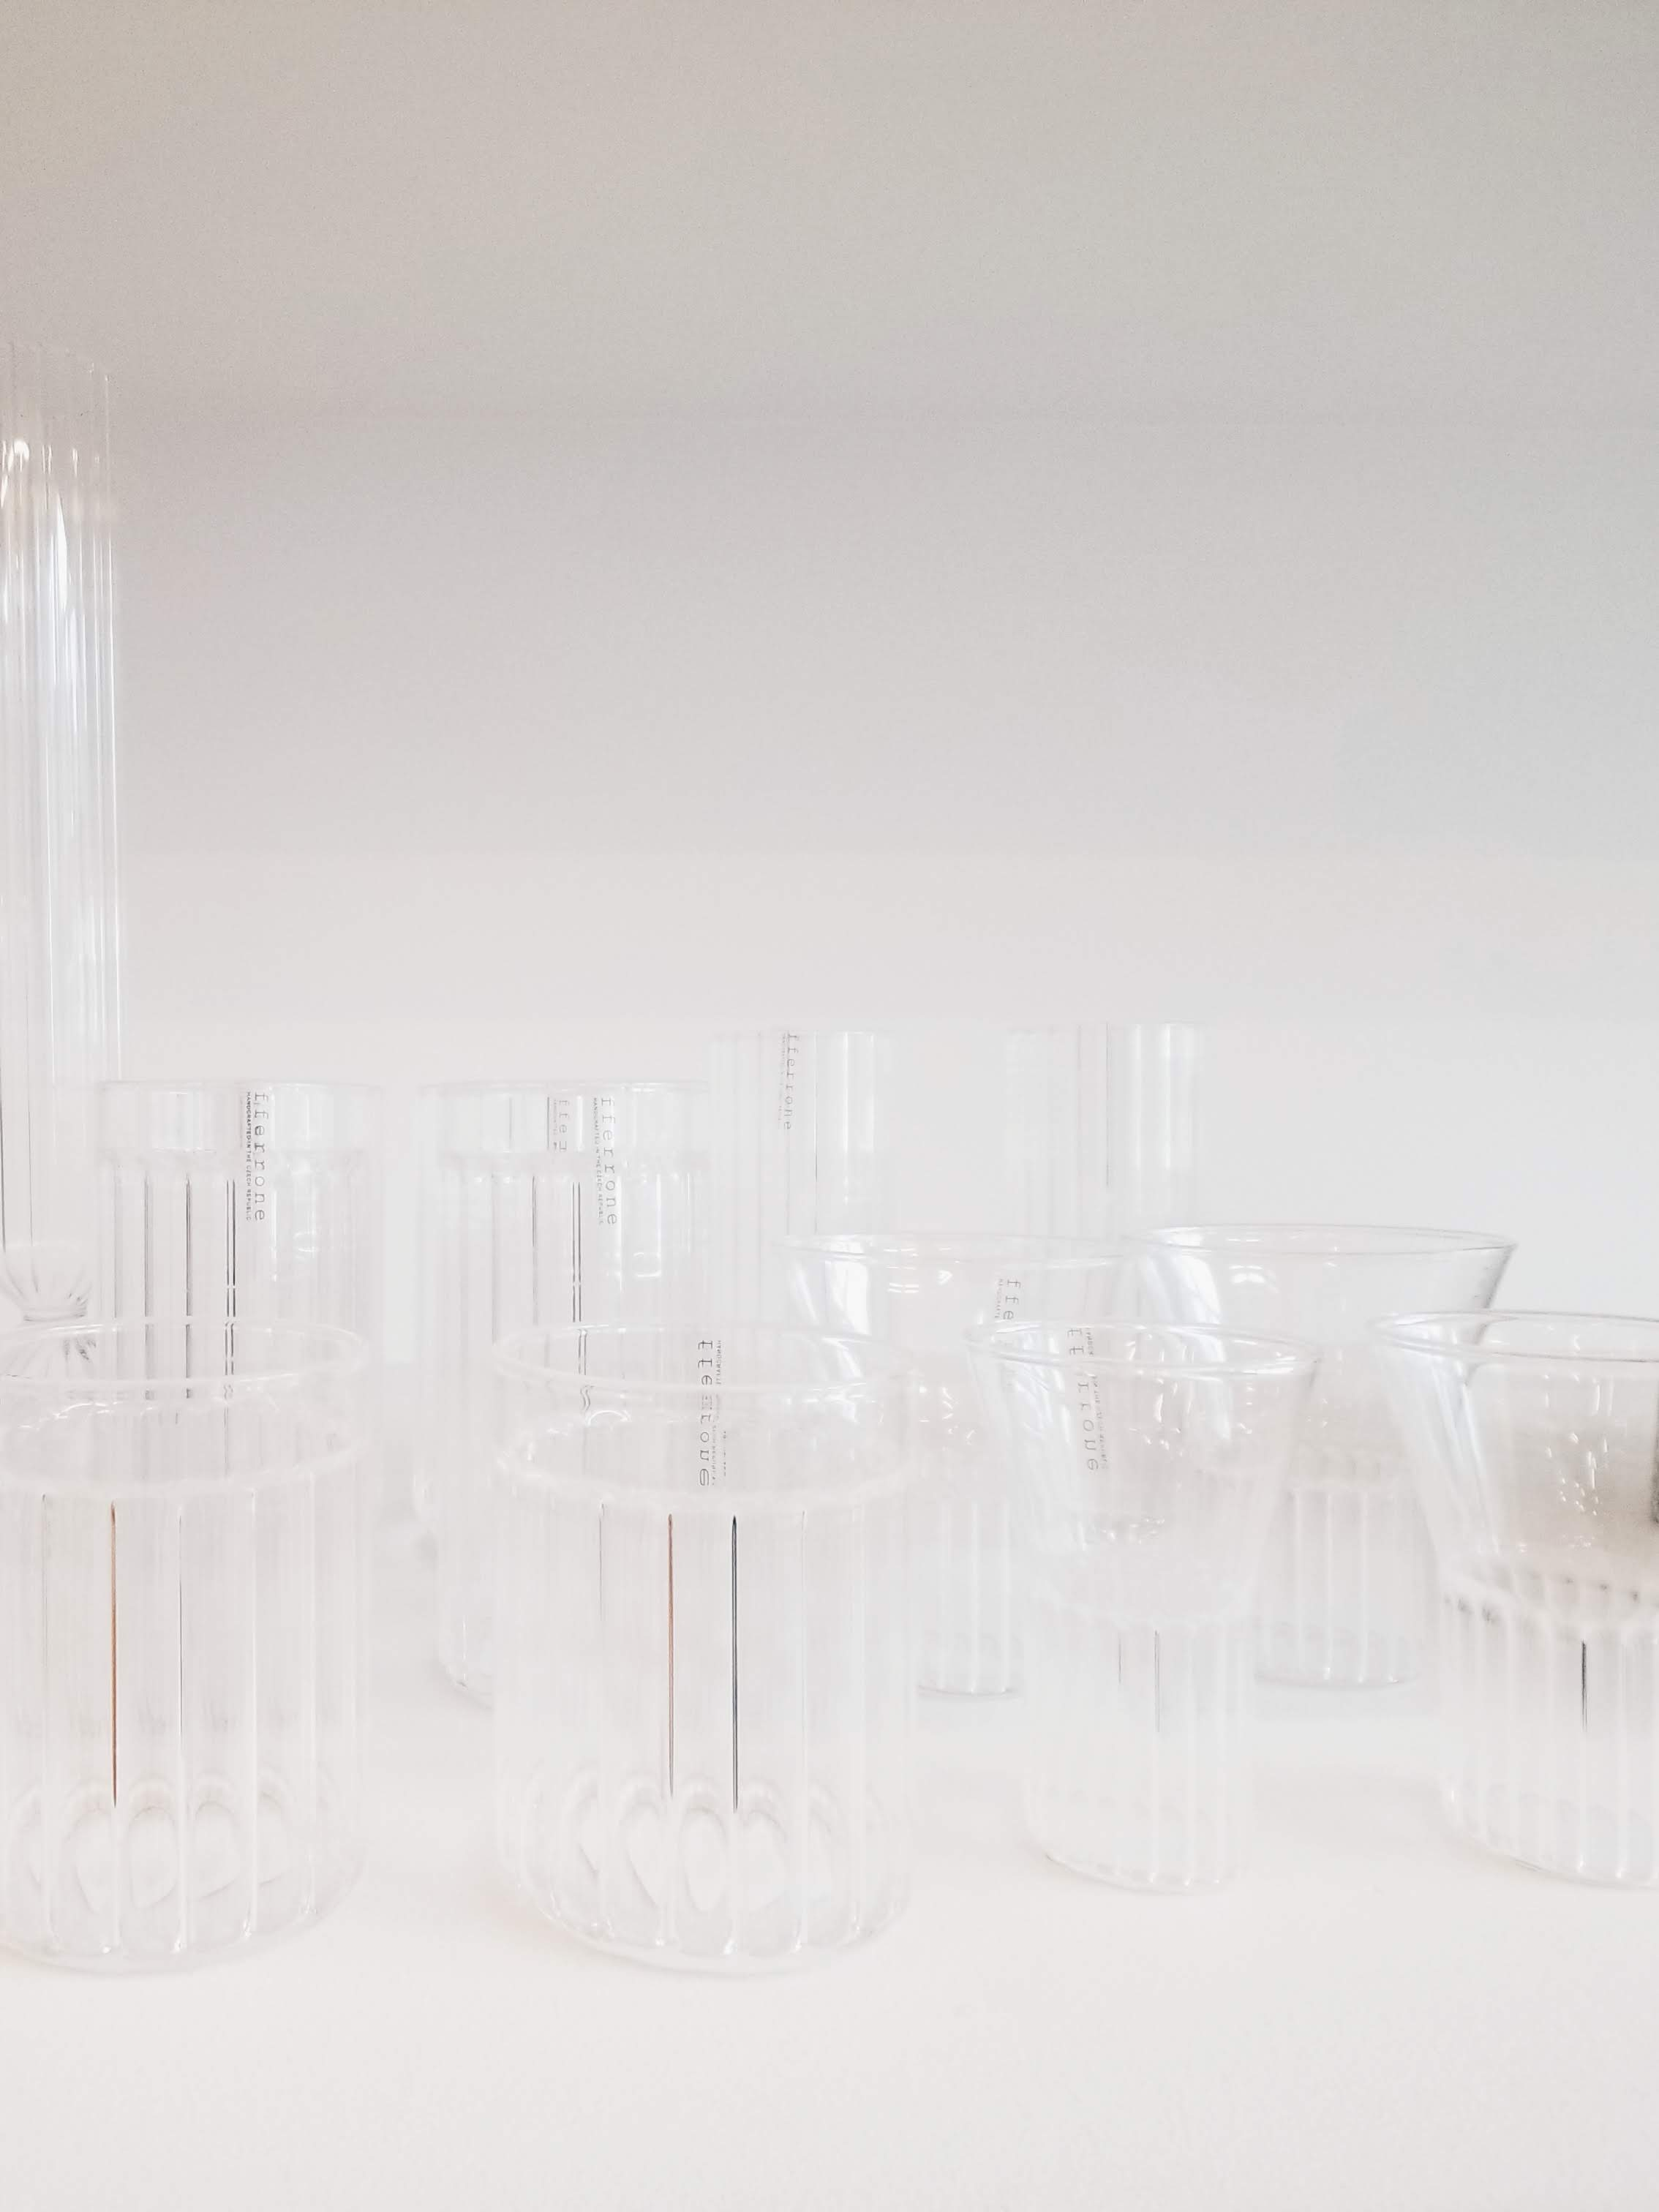 I loved these fluted glasses at Totokaelo. The ridges were actually on the inside, so there was a deceptive contrast between perceived texture and tactile smoothness. They felt light and delicate but caught the light like cut glass.